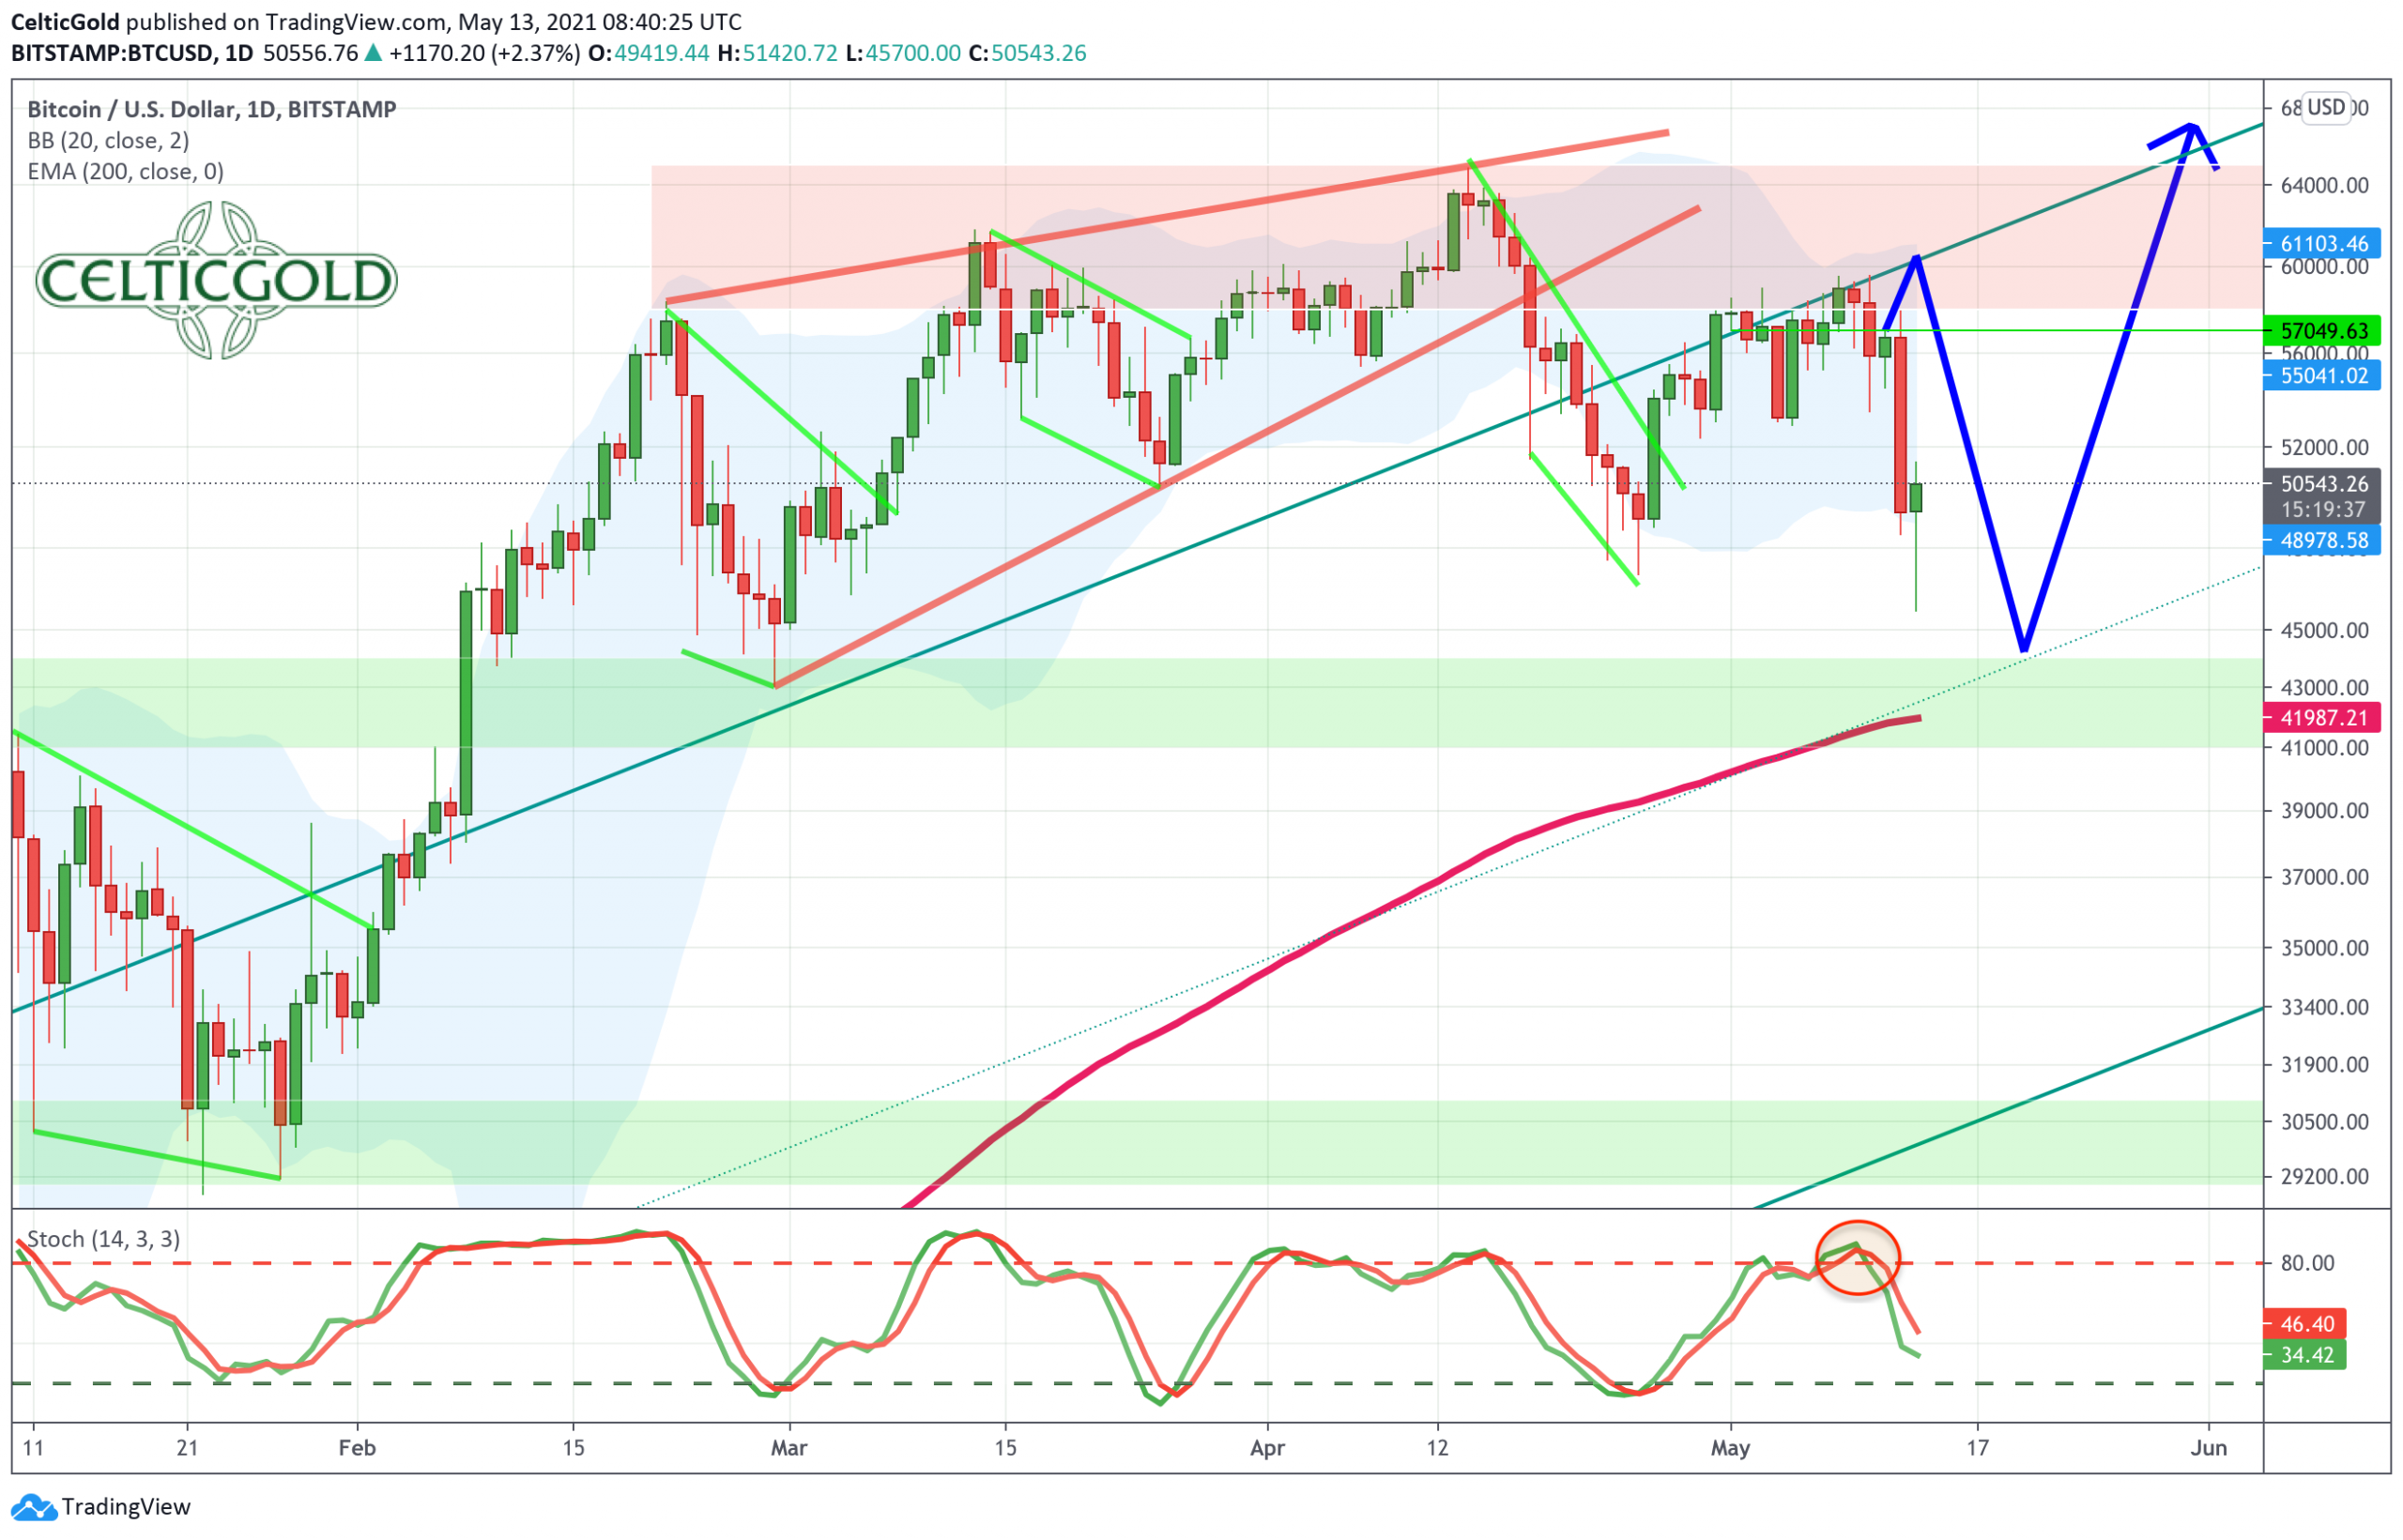 Bitcoin, Daily Chart as of May 13th, 2021. Source: Tradingview. Bitcoin - Caution, the crypto sector is getting a bit overheated in the short-term.